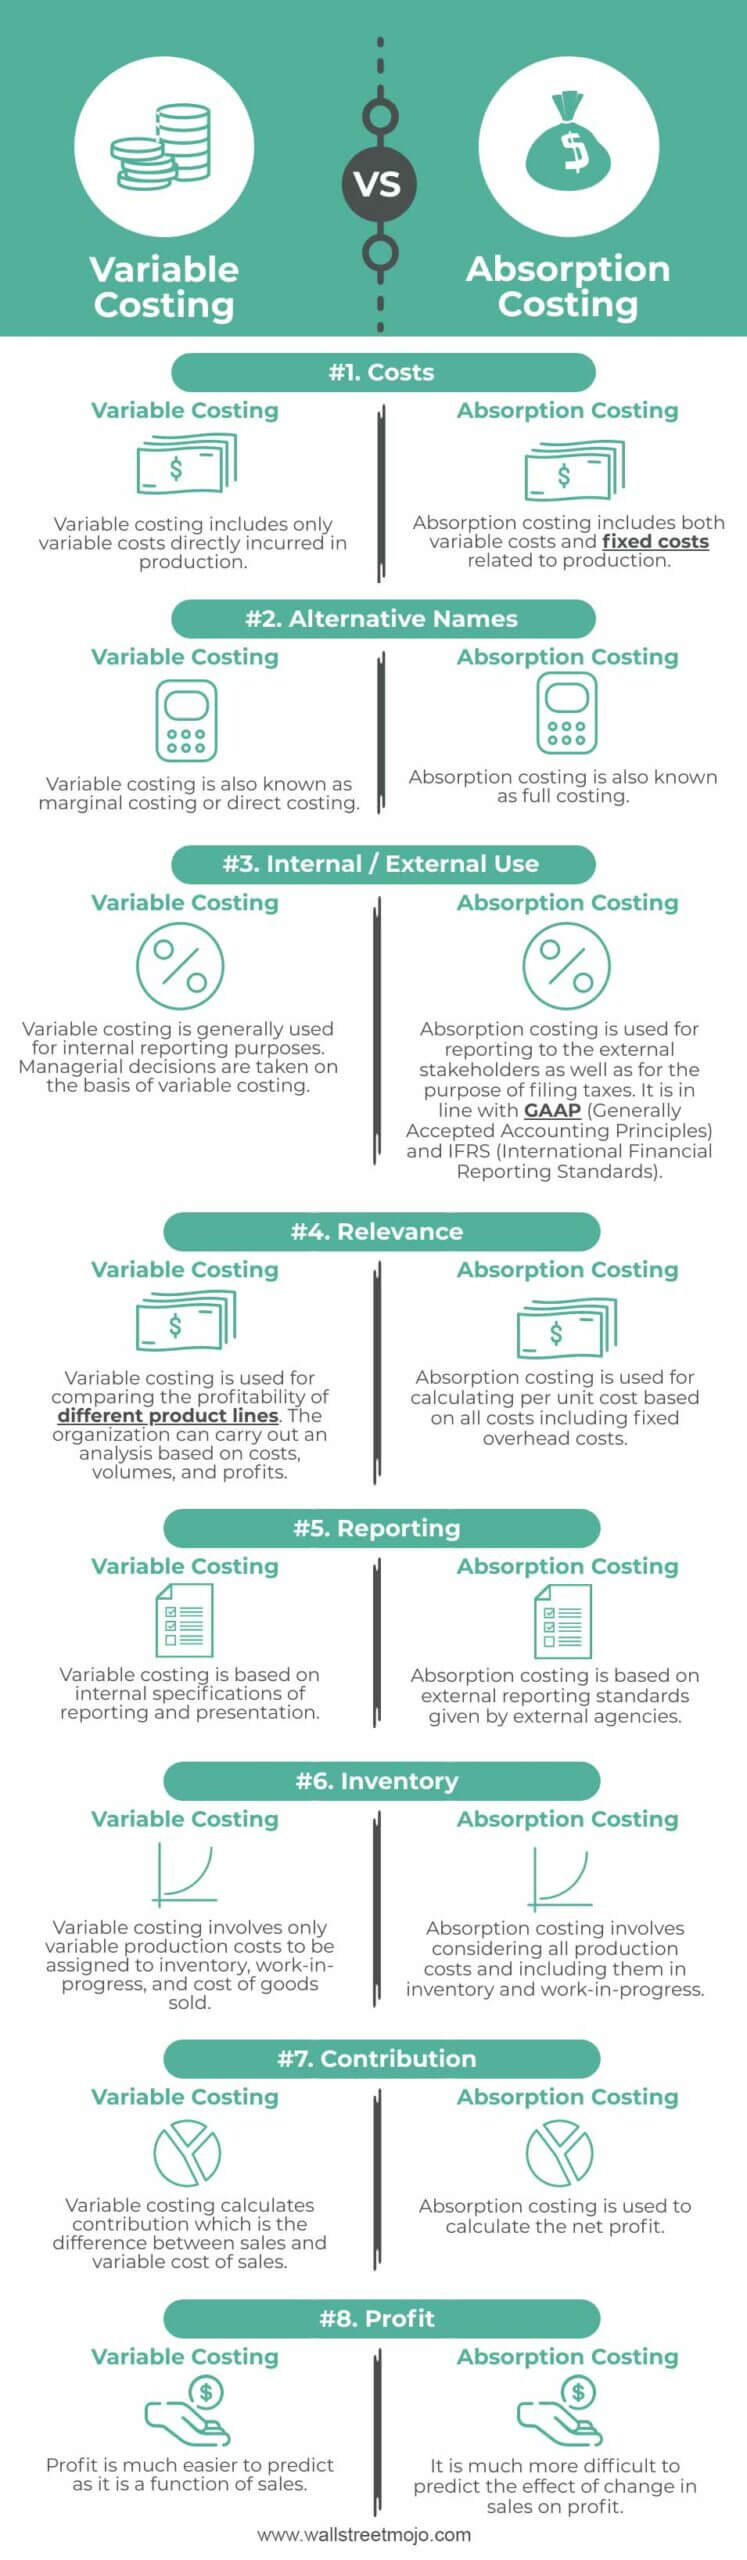 Variable-Costing-vs-Absorption-Costing-info